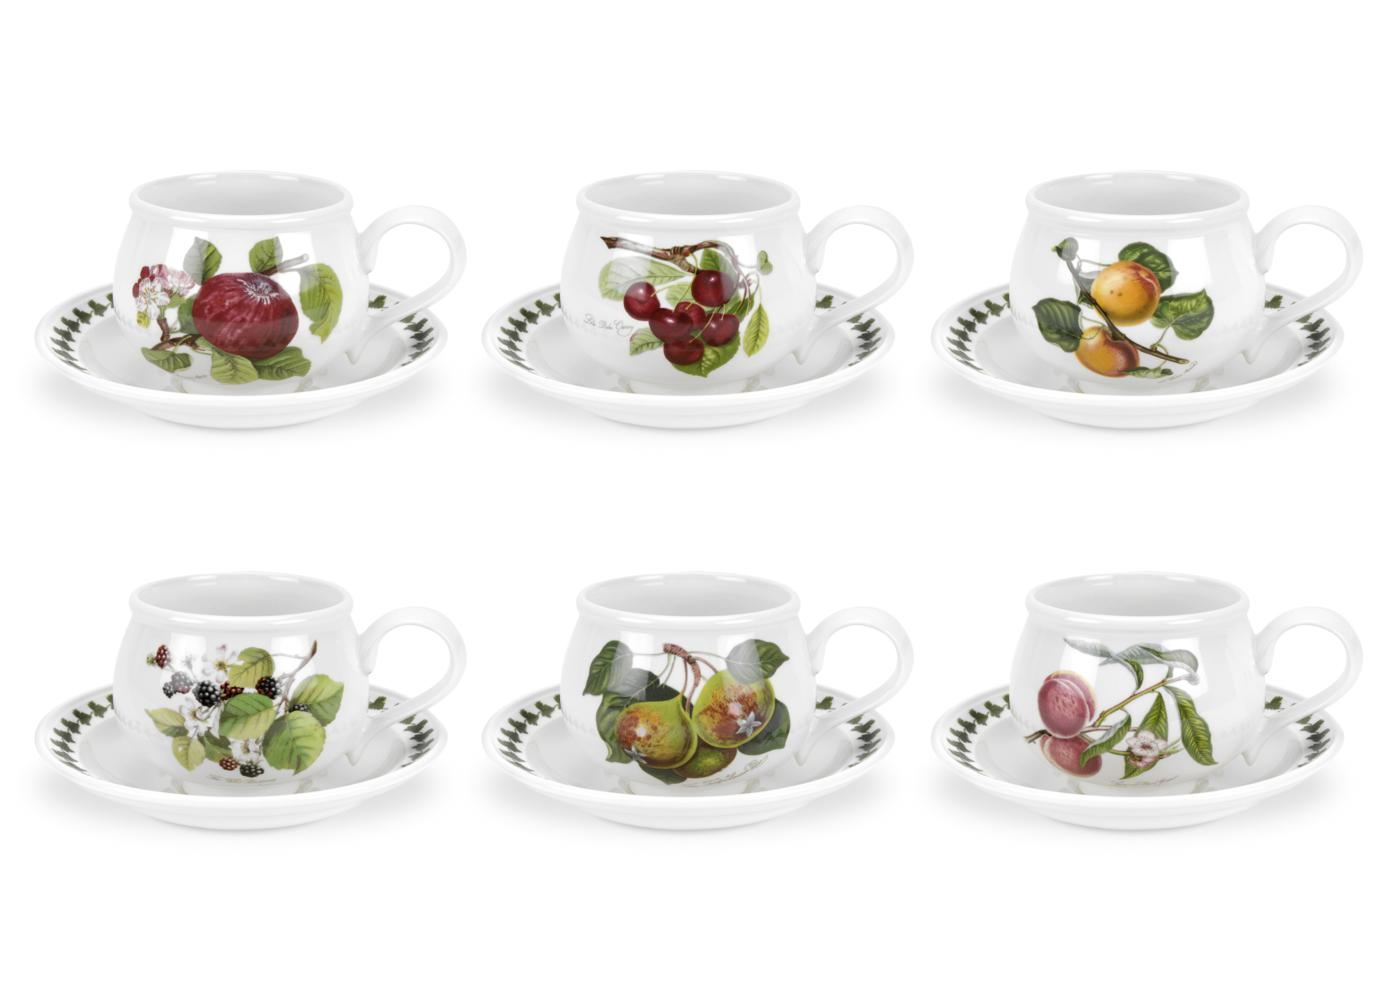 Portmeirion Pomona Set of 6 Breakfast Cups and Saucers image number 0